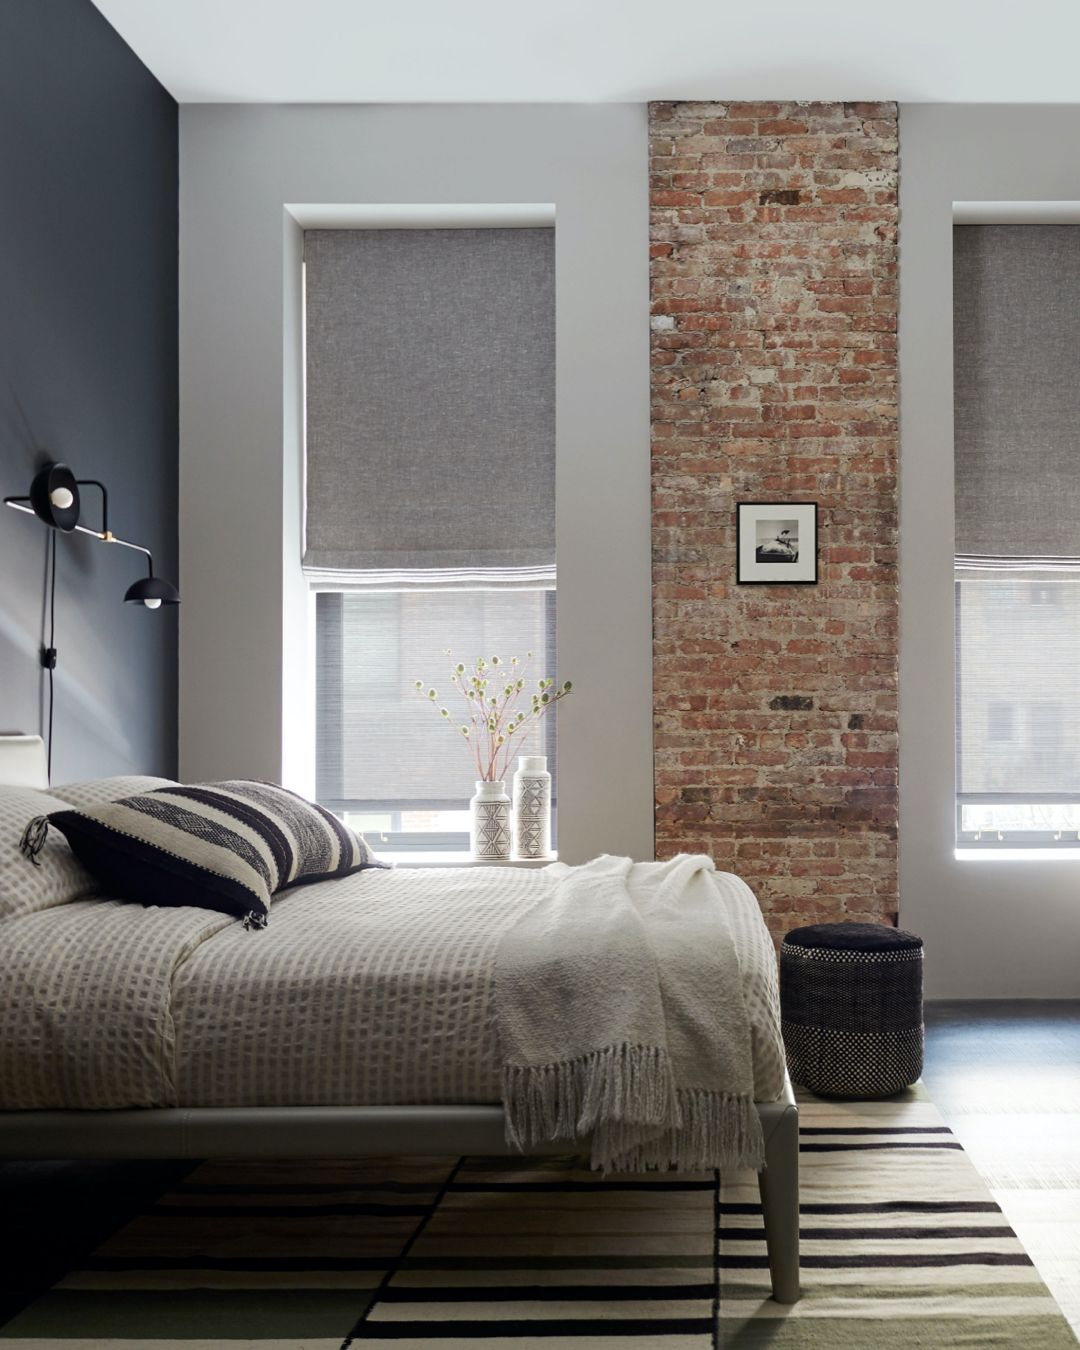 Sunday Style In 2021 The Shade Store Shade Store Window Treatments Bedroom window frame model